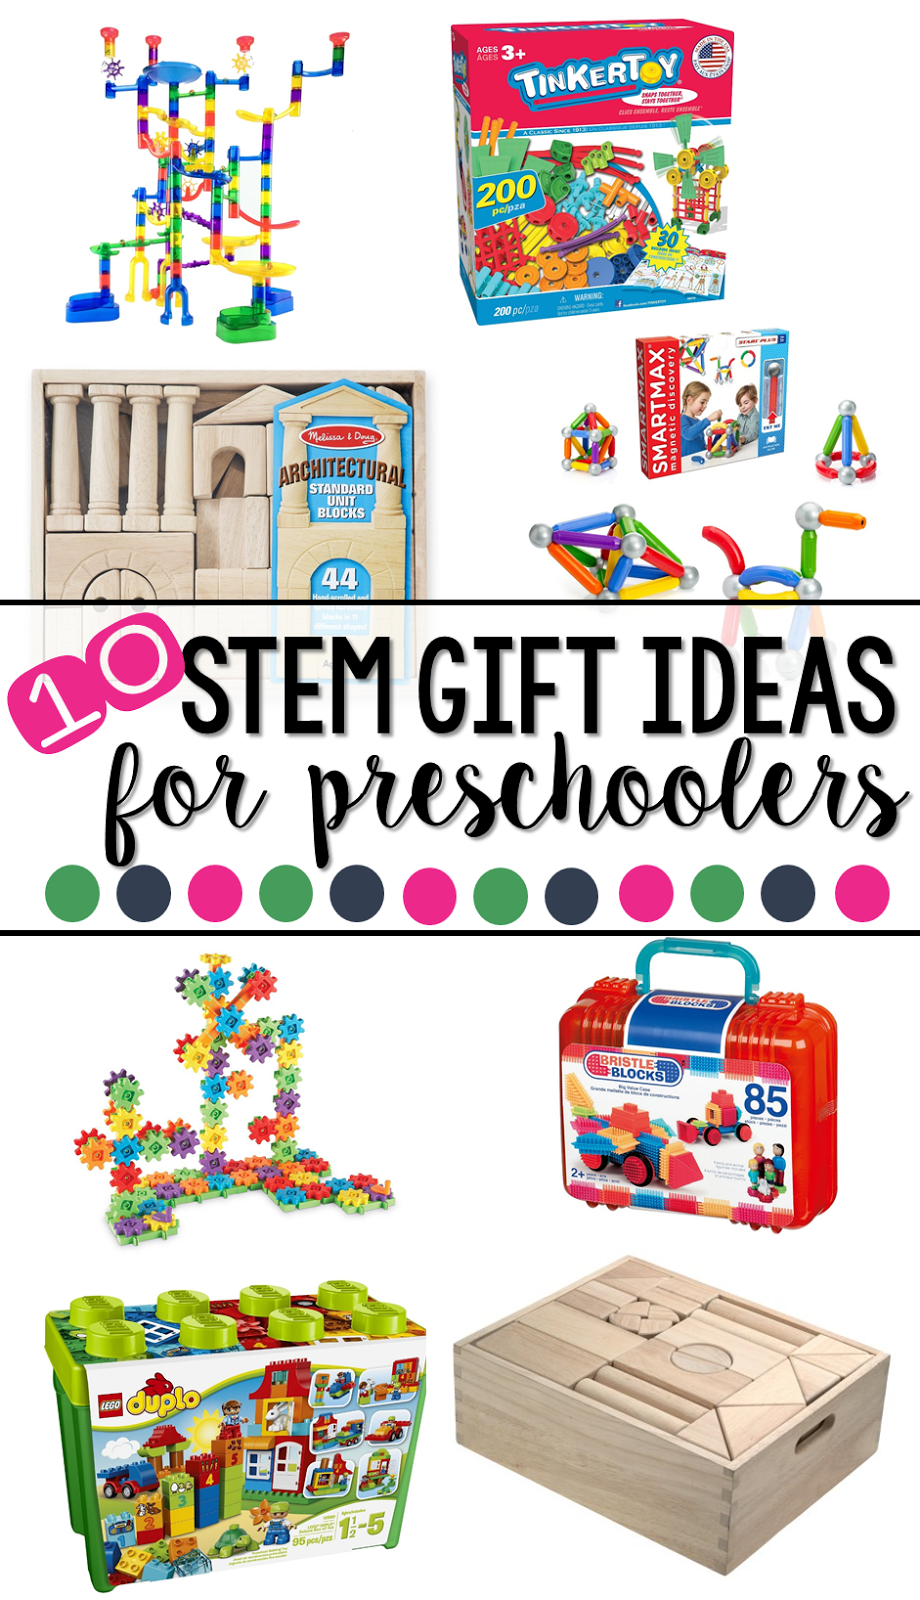 Ten fun STEM gift ideas for preschoolers that focus on open ended play, building and creating.